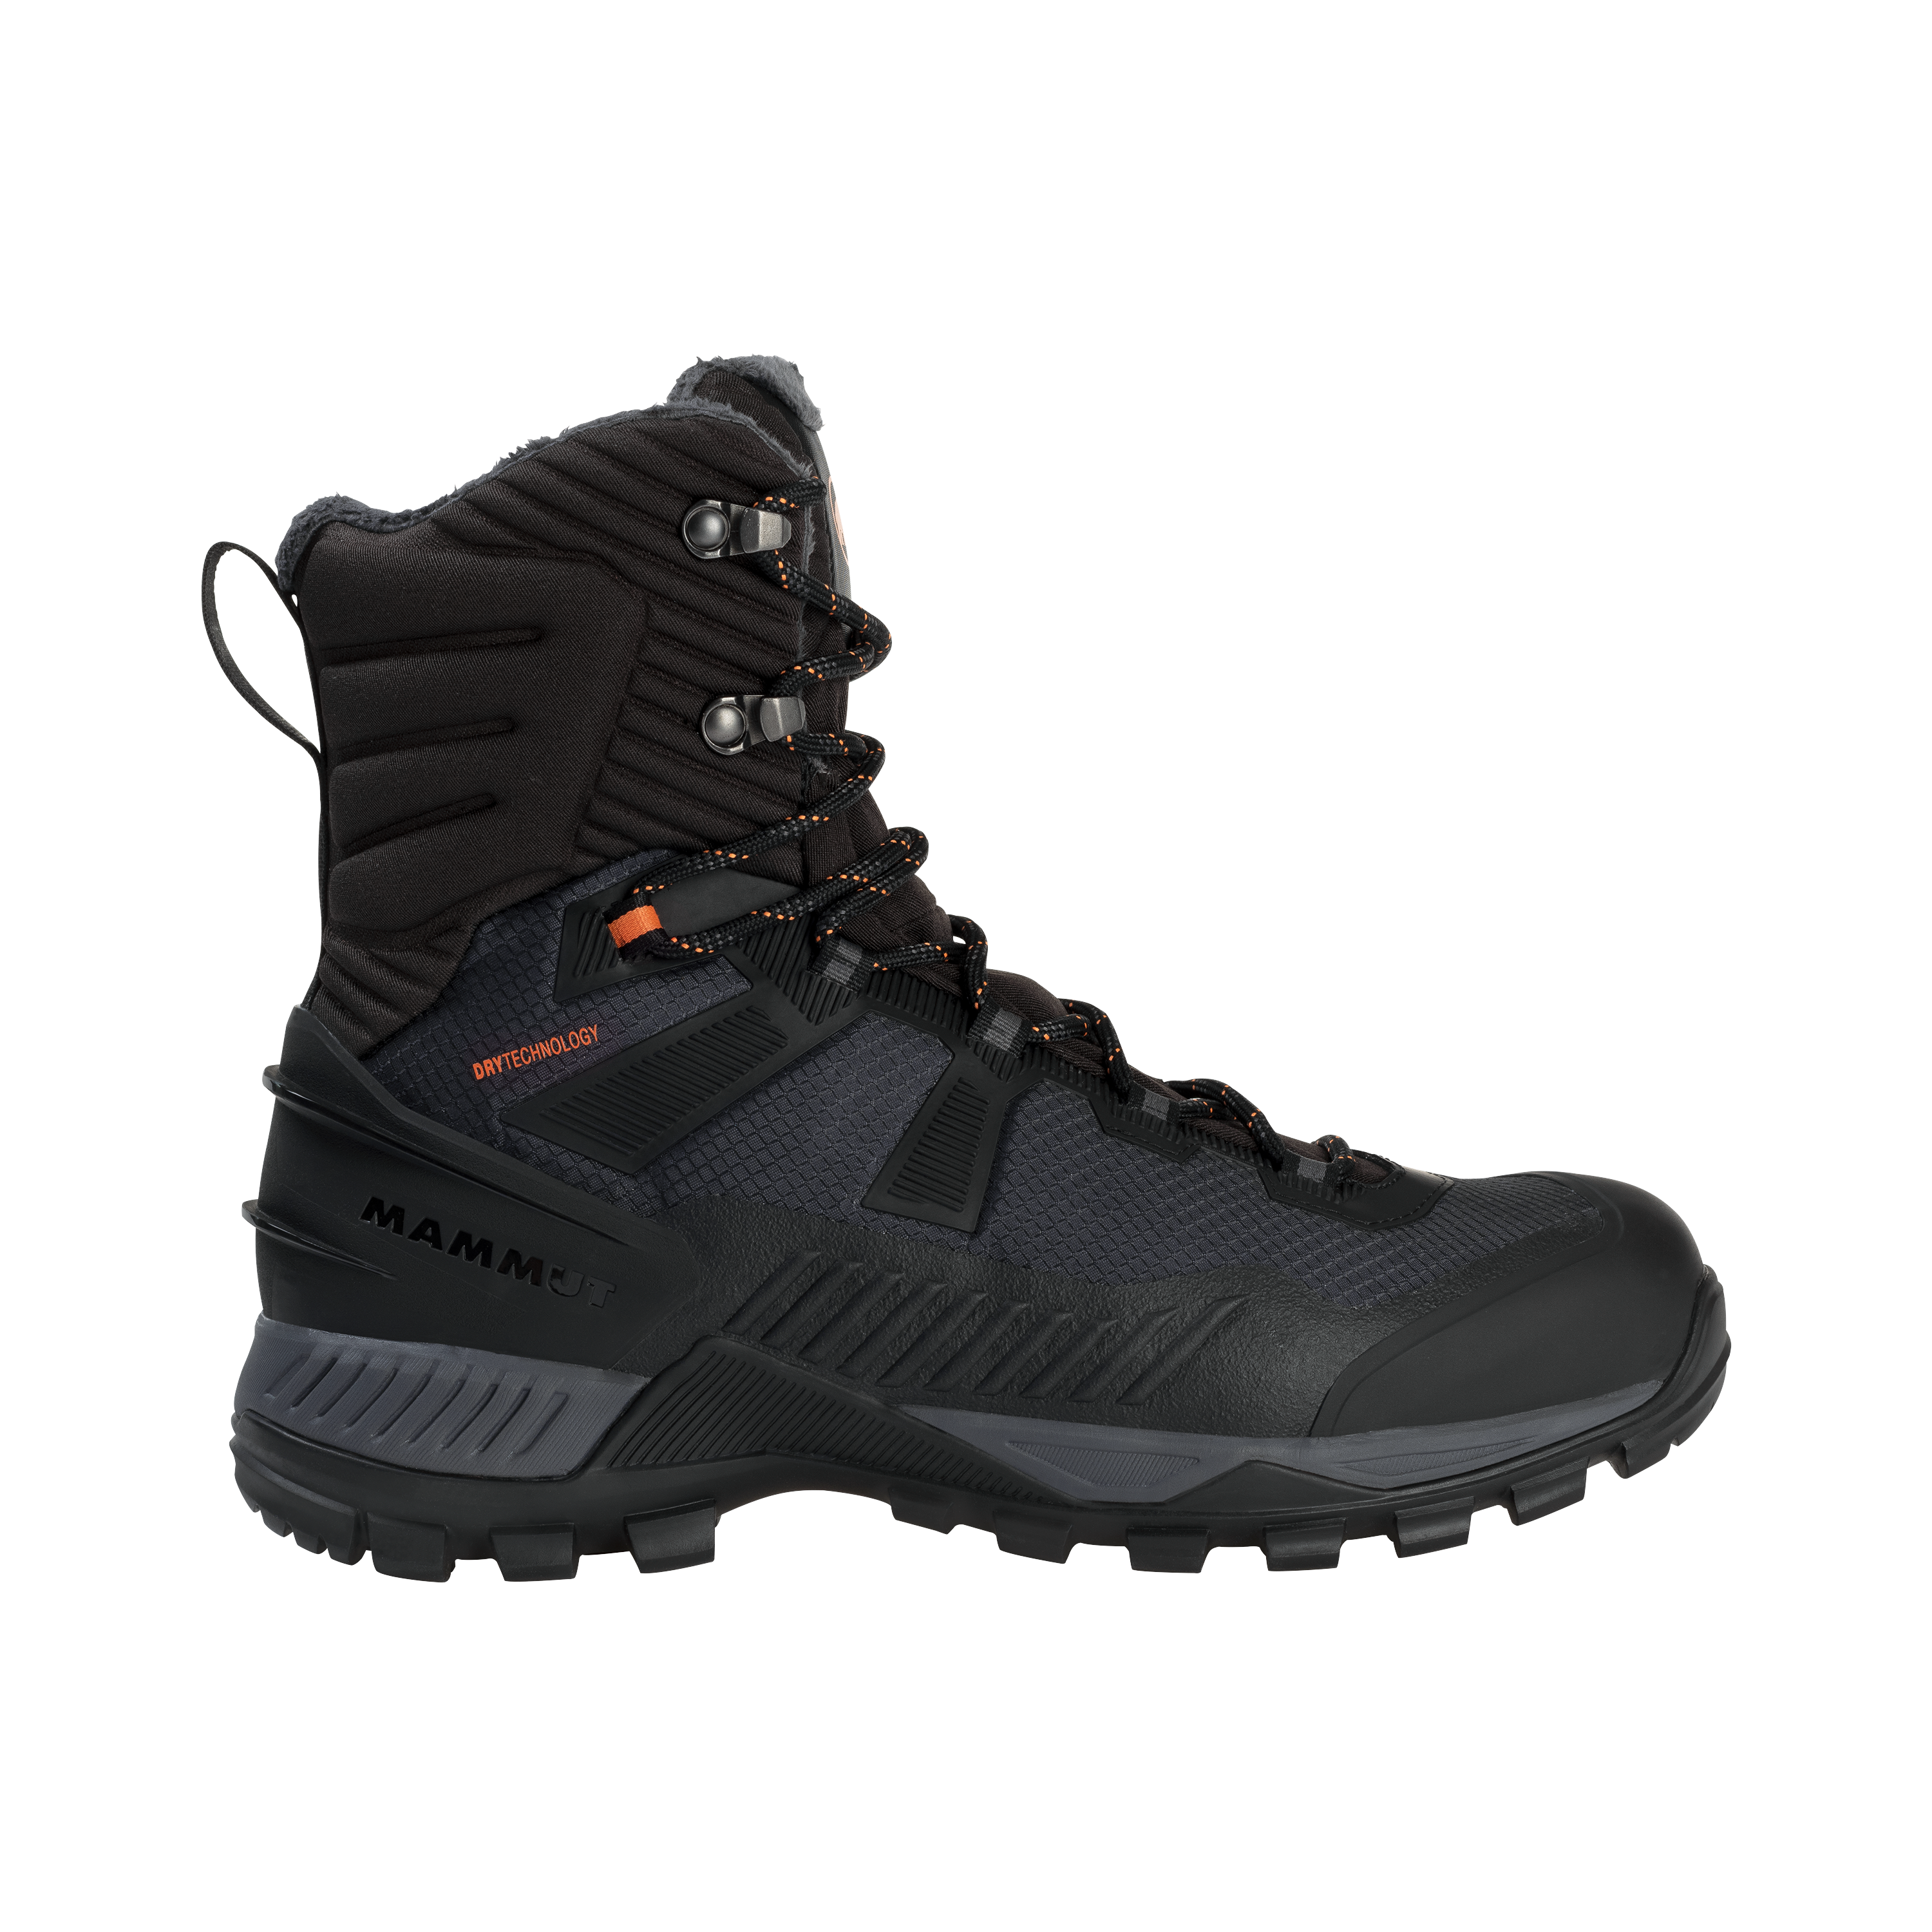 Mammut Hiking Highlights 2020/21